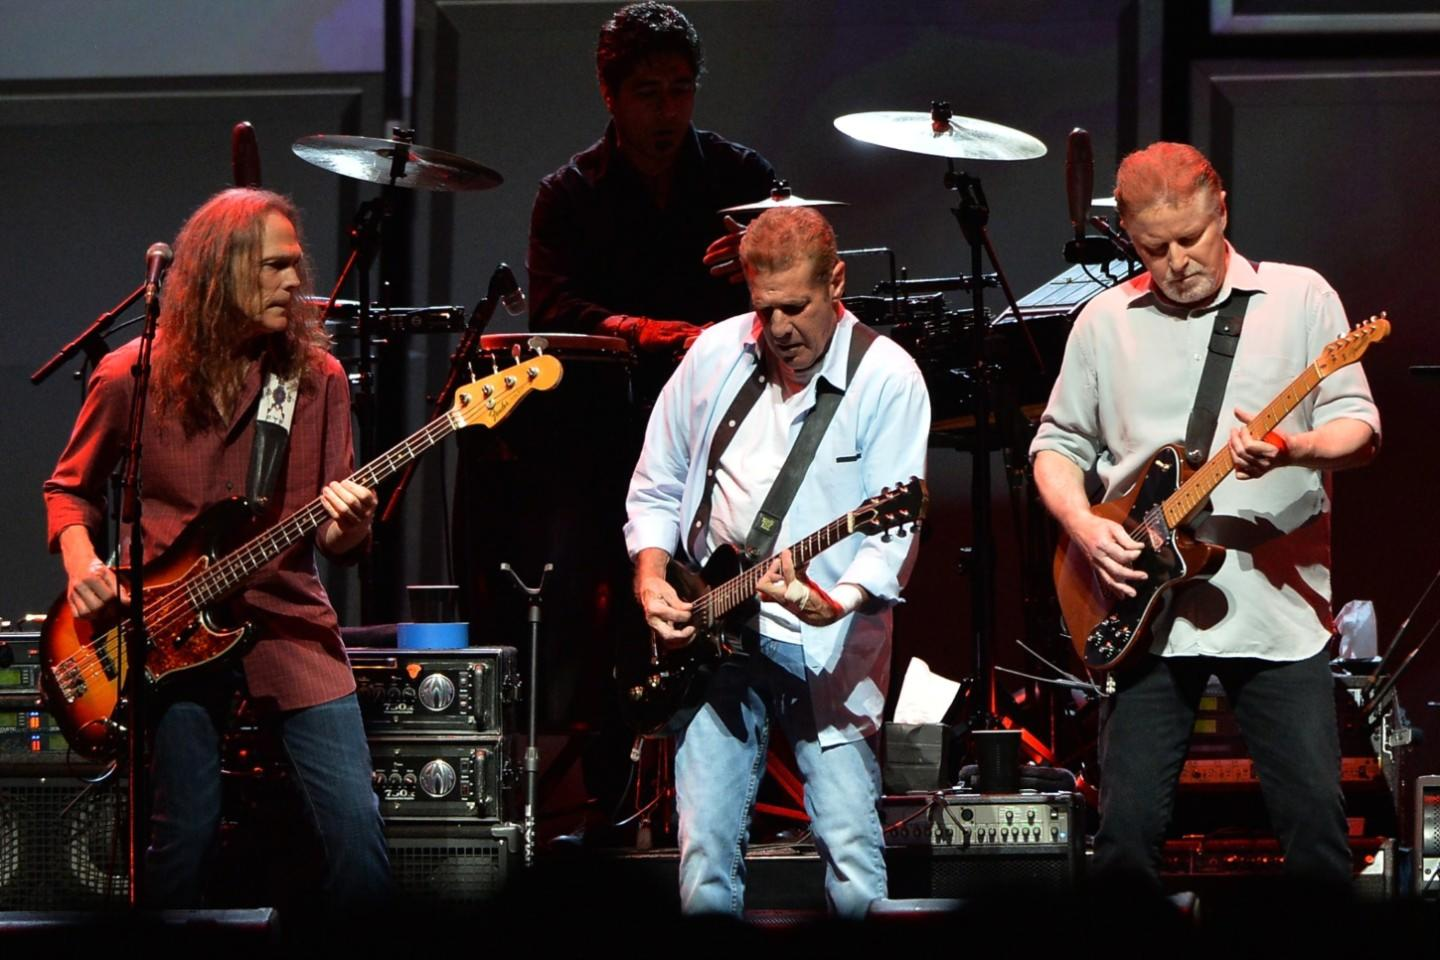 Eagles tour dates 2019 in Sydney